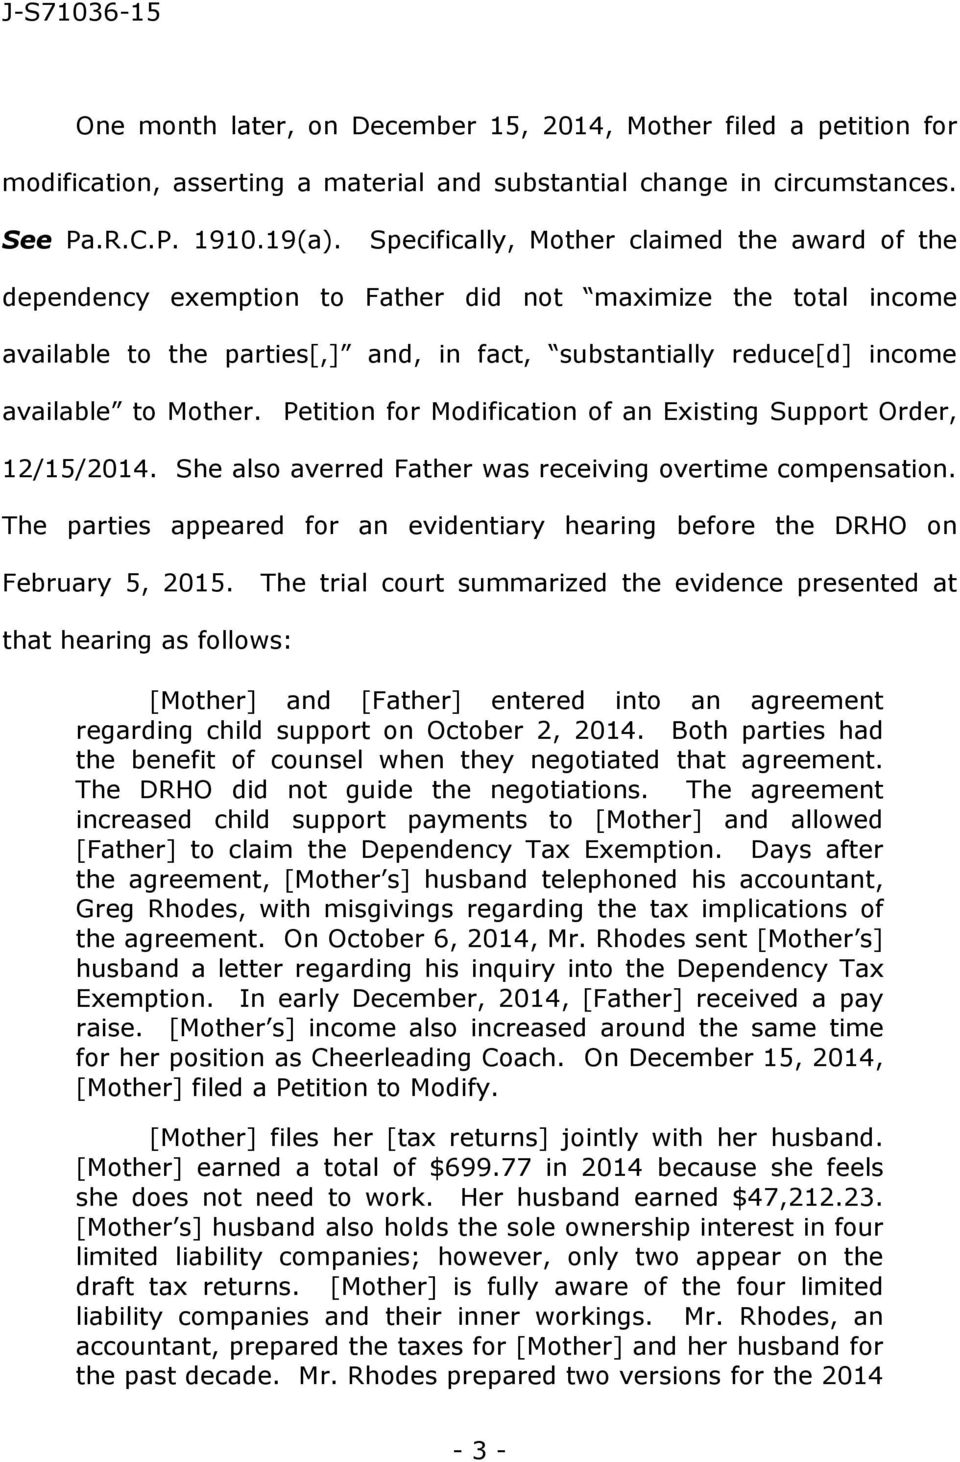 Mother. Petition for Modification of an Existing Support Order, 12/15/2014. She also averred Father was receiving overtime compensation.